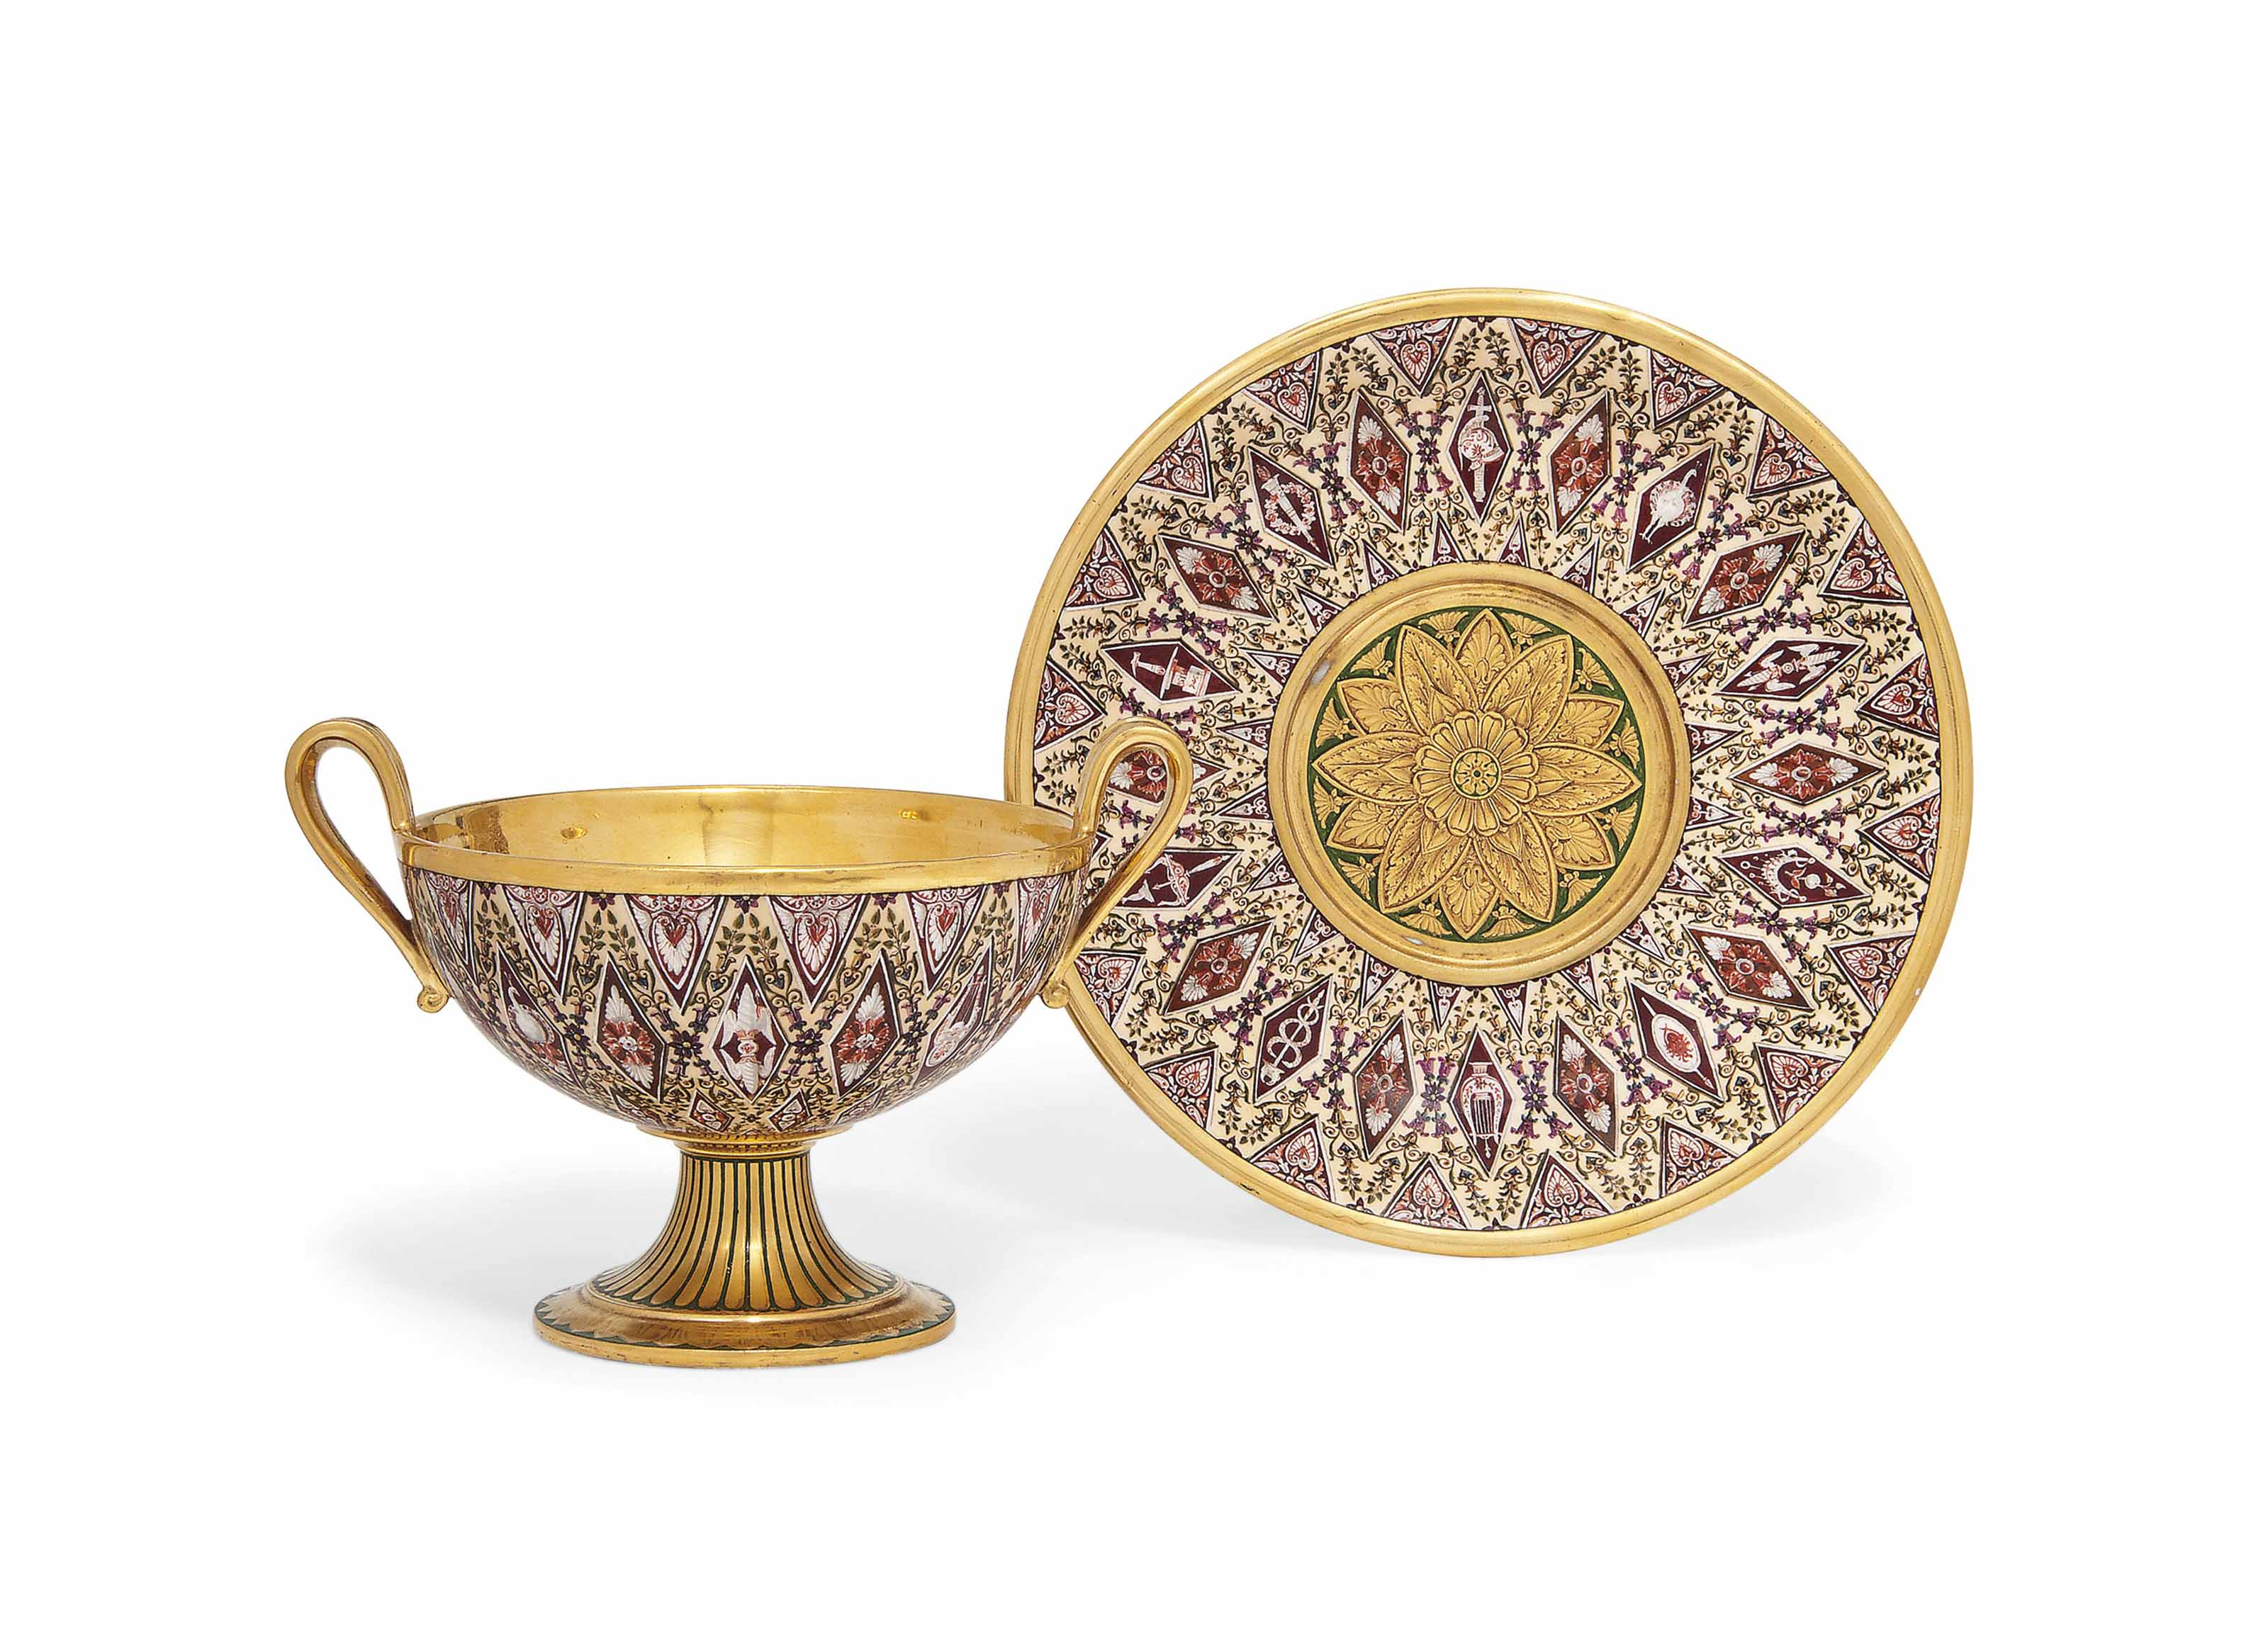 A SEVRES (HARD PASTE) TWO-HANDLED CUP AND STAND (COUPE 'HEMISPHERIQUE A BOUILLON')